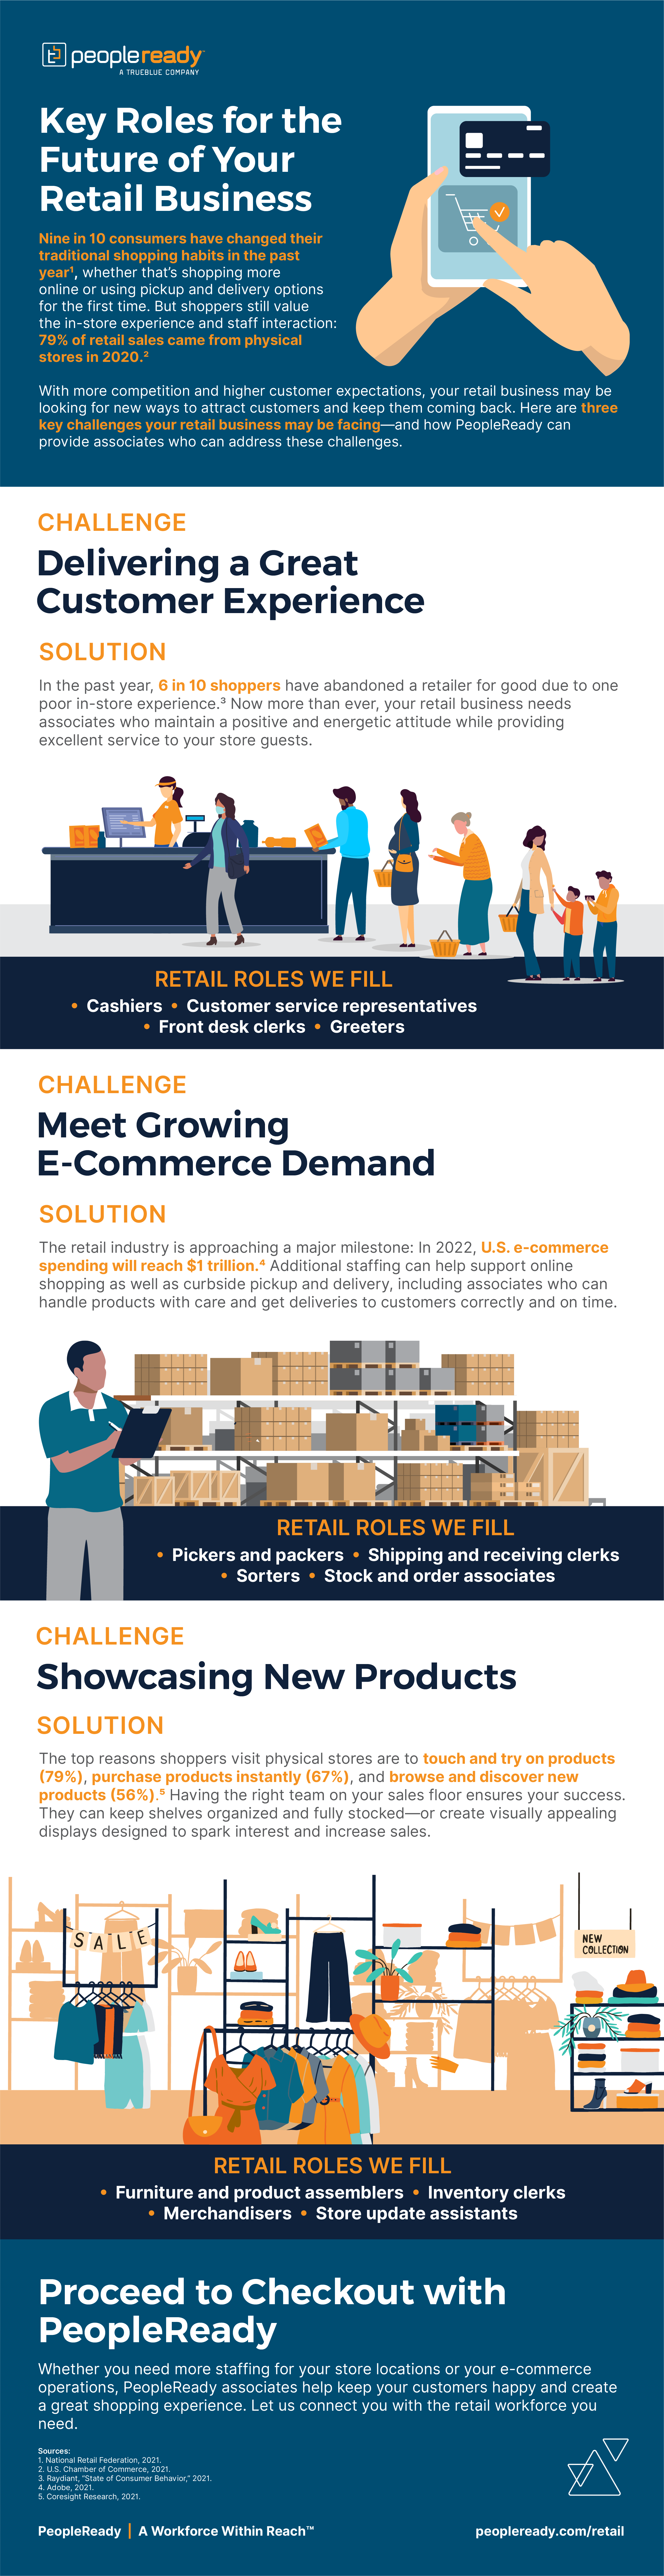 Key-Roles-for-the-Future-of-Your-Retail-Business